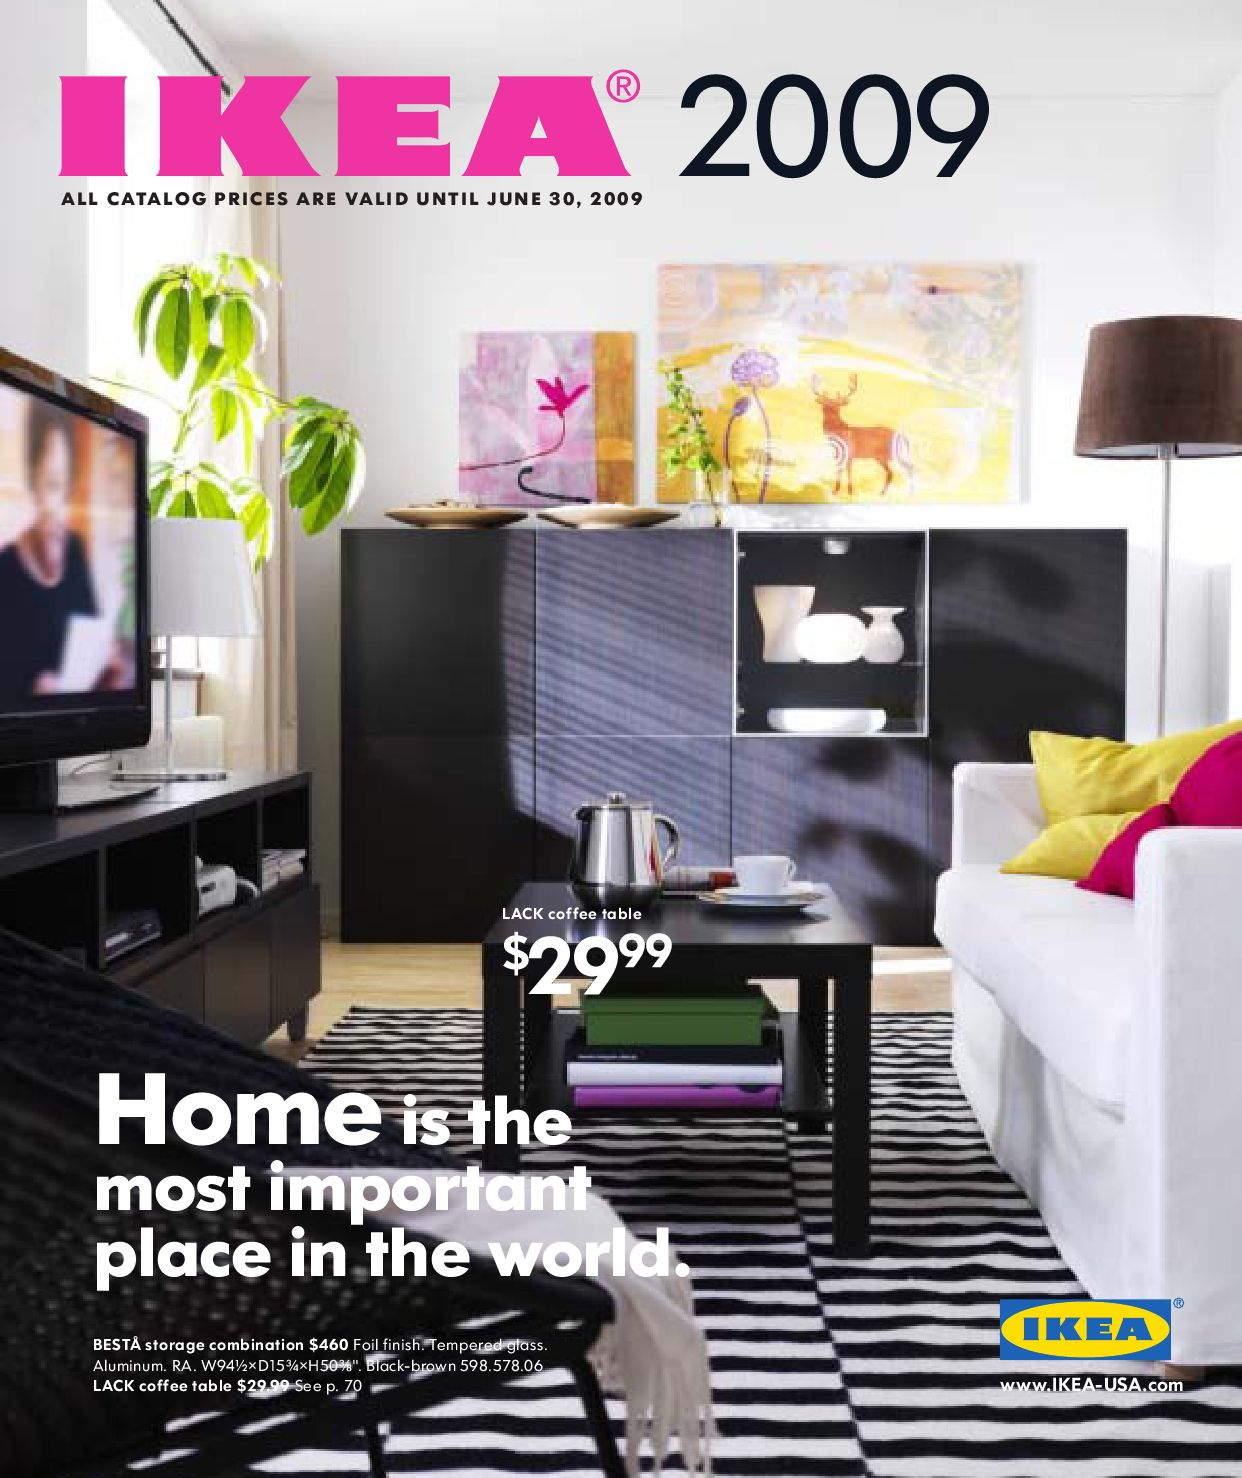 ikea 2009 catalogue by muhammad mansour issuu. Black Bedroom Furniture Sets. Home Design Ideas